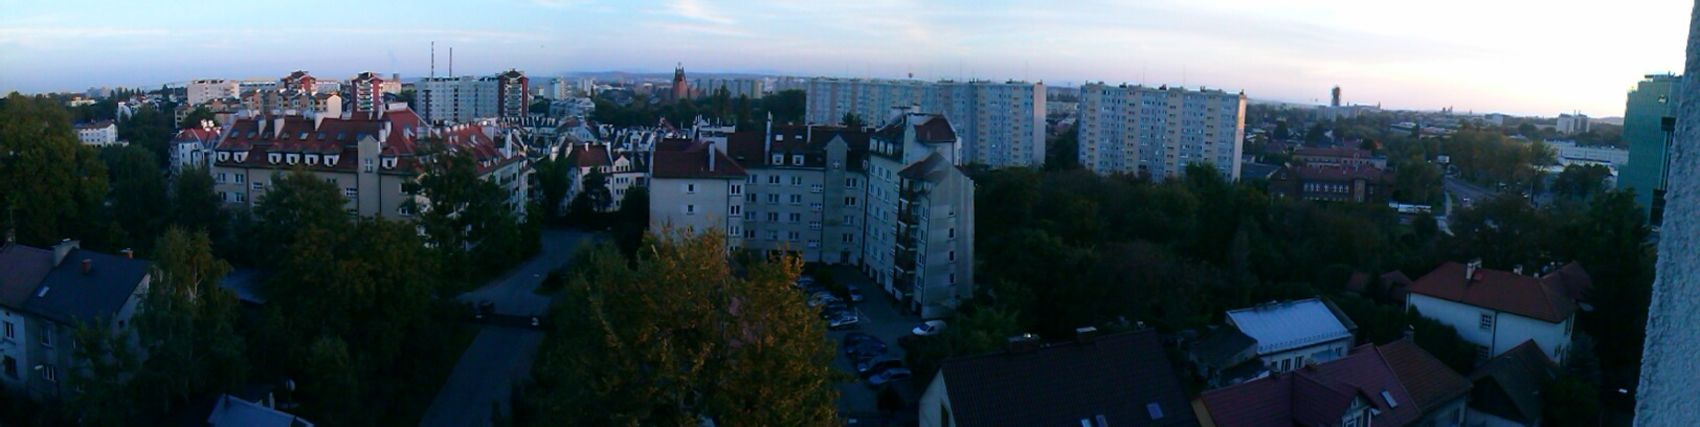 Cracov Window View Sunny Day Relaxing